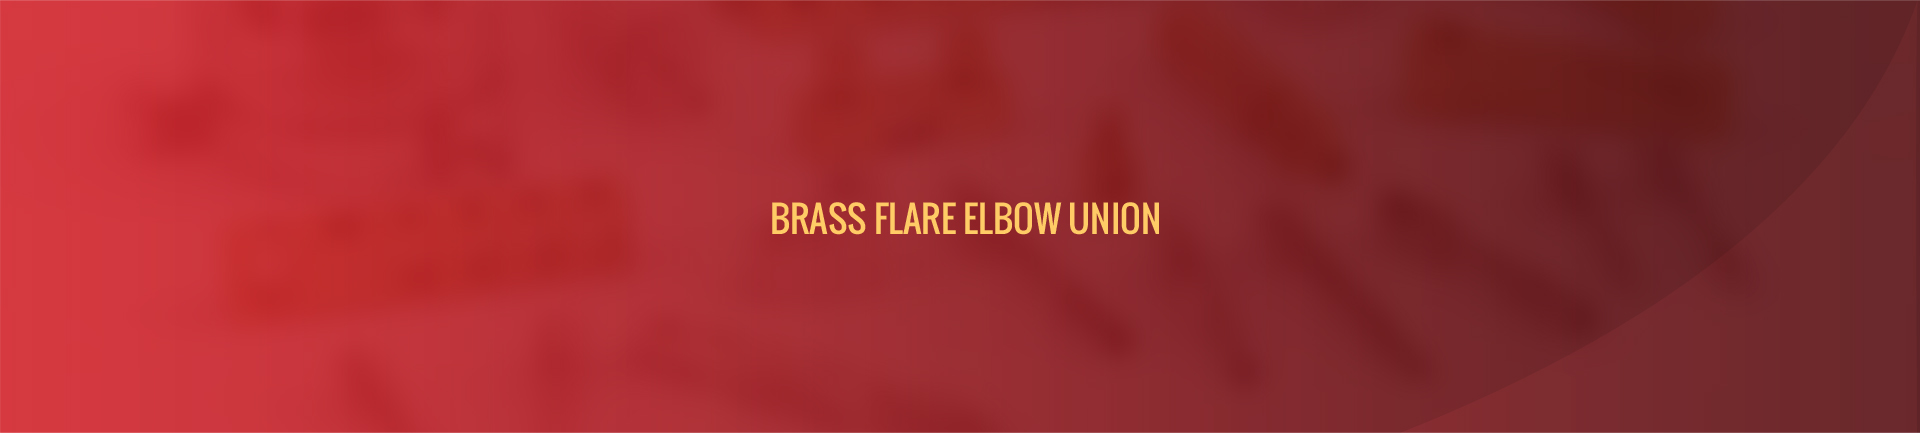 brass_flare_elbow_union-banner